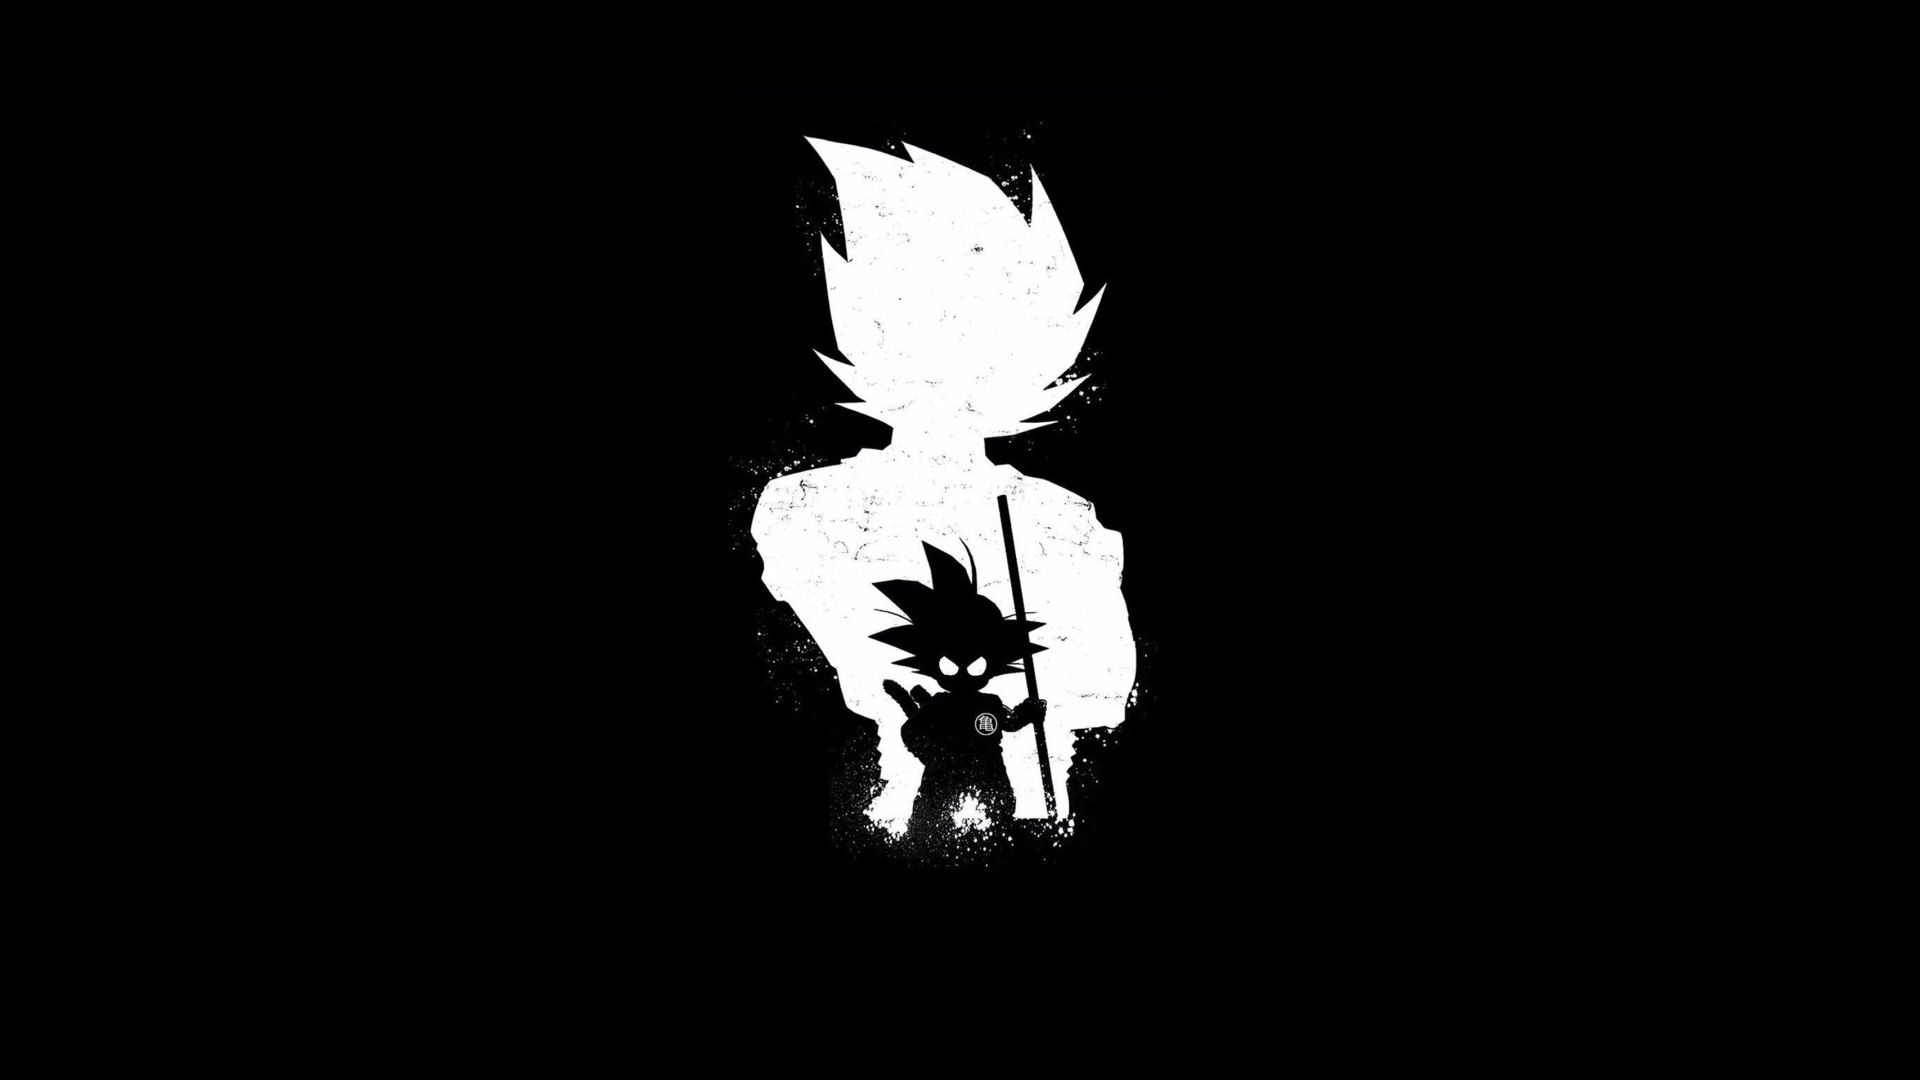 1920x1080 Goku Images Free Download Dark Wallpaper Dark Black